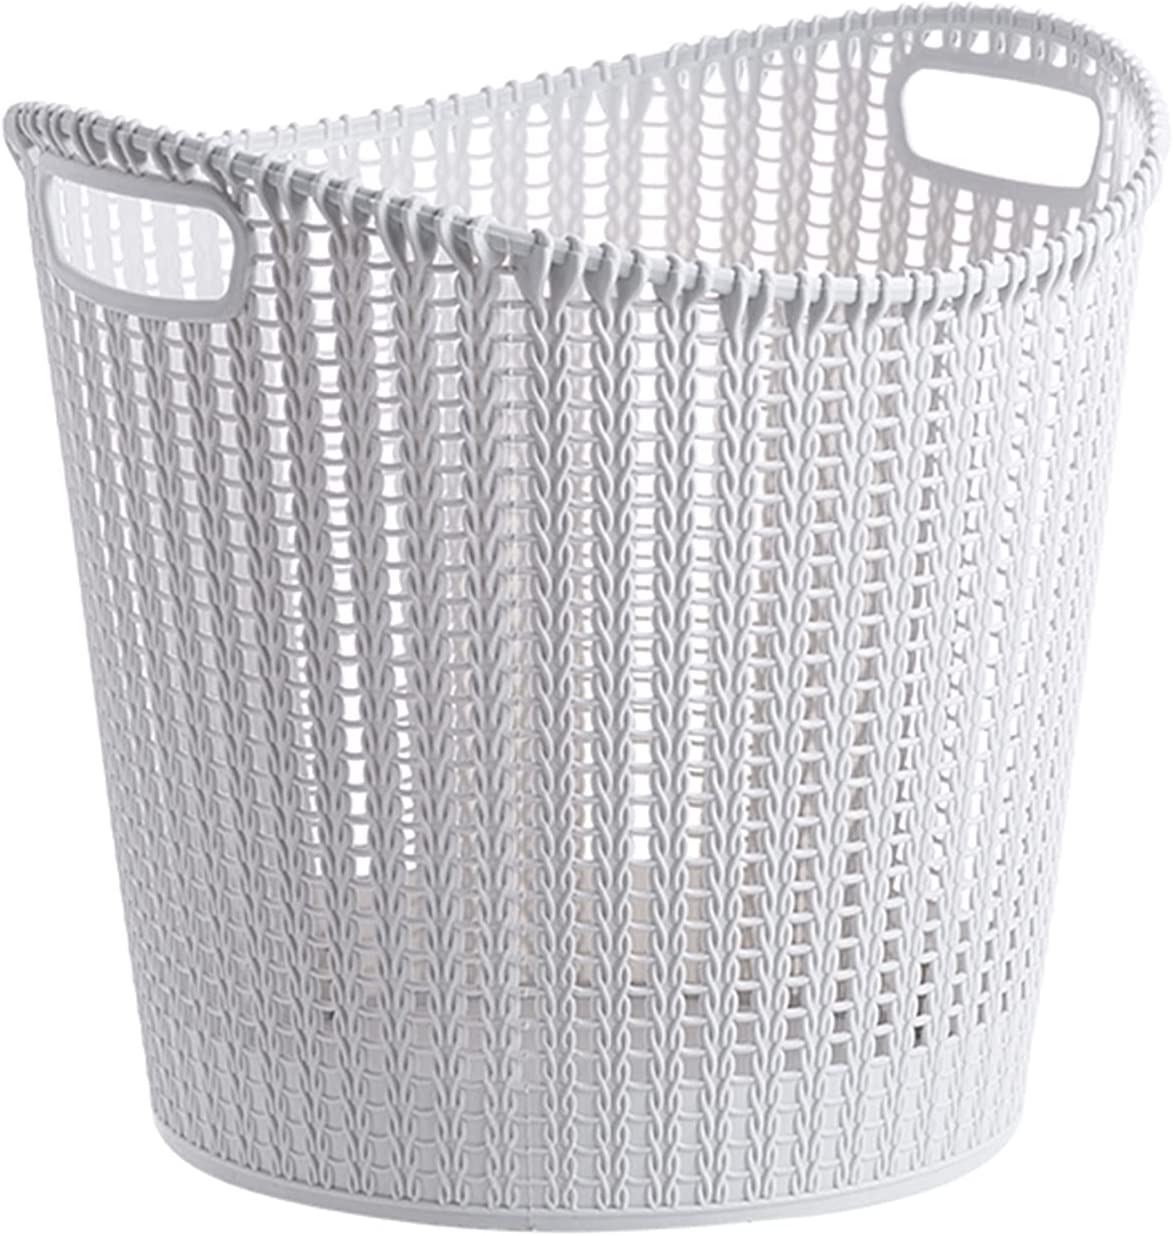 TINGCHAO Laundry Baskets Extra Large Storage Basket Soft Max 63% Mail order cheap OFF Plastic